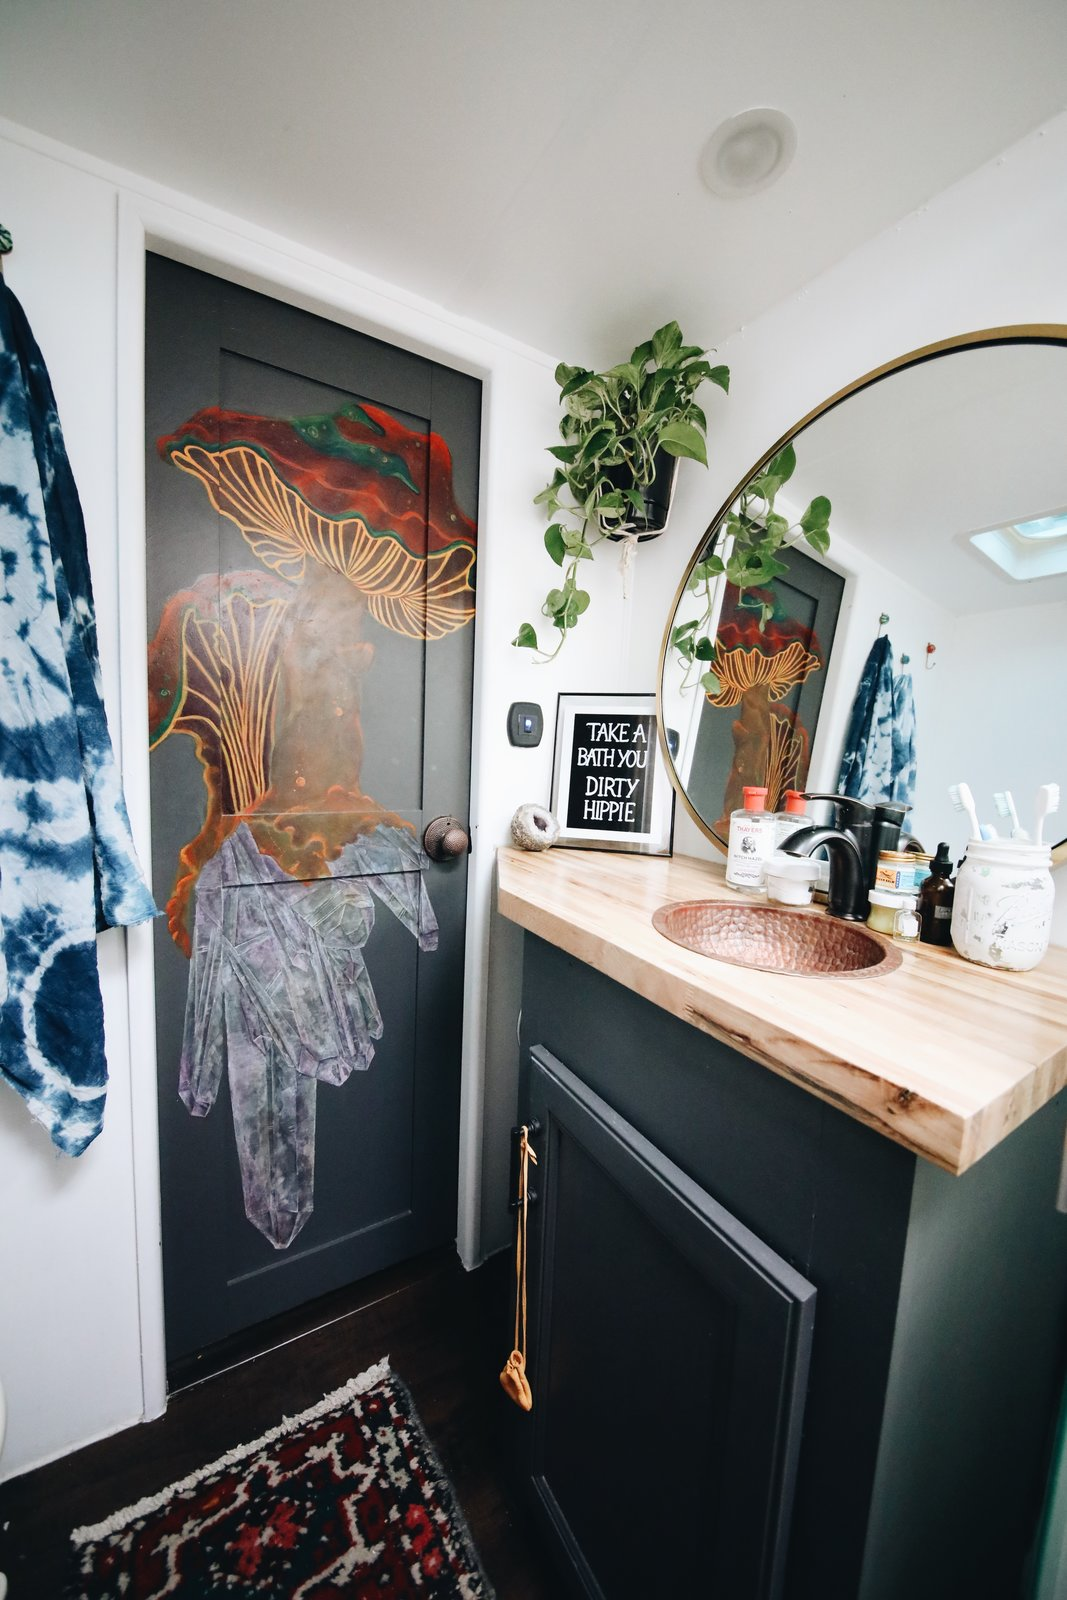 For the bathroom, they used the leftover butcherblock from the kitchen, and a hammered copper sink that they found via eBay.